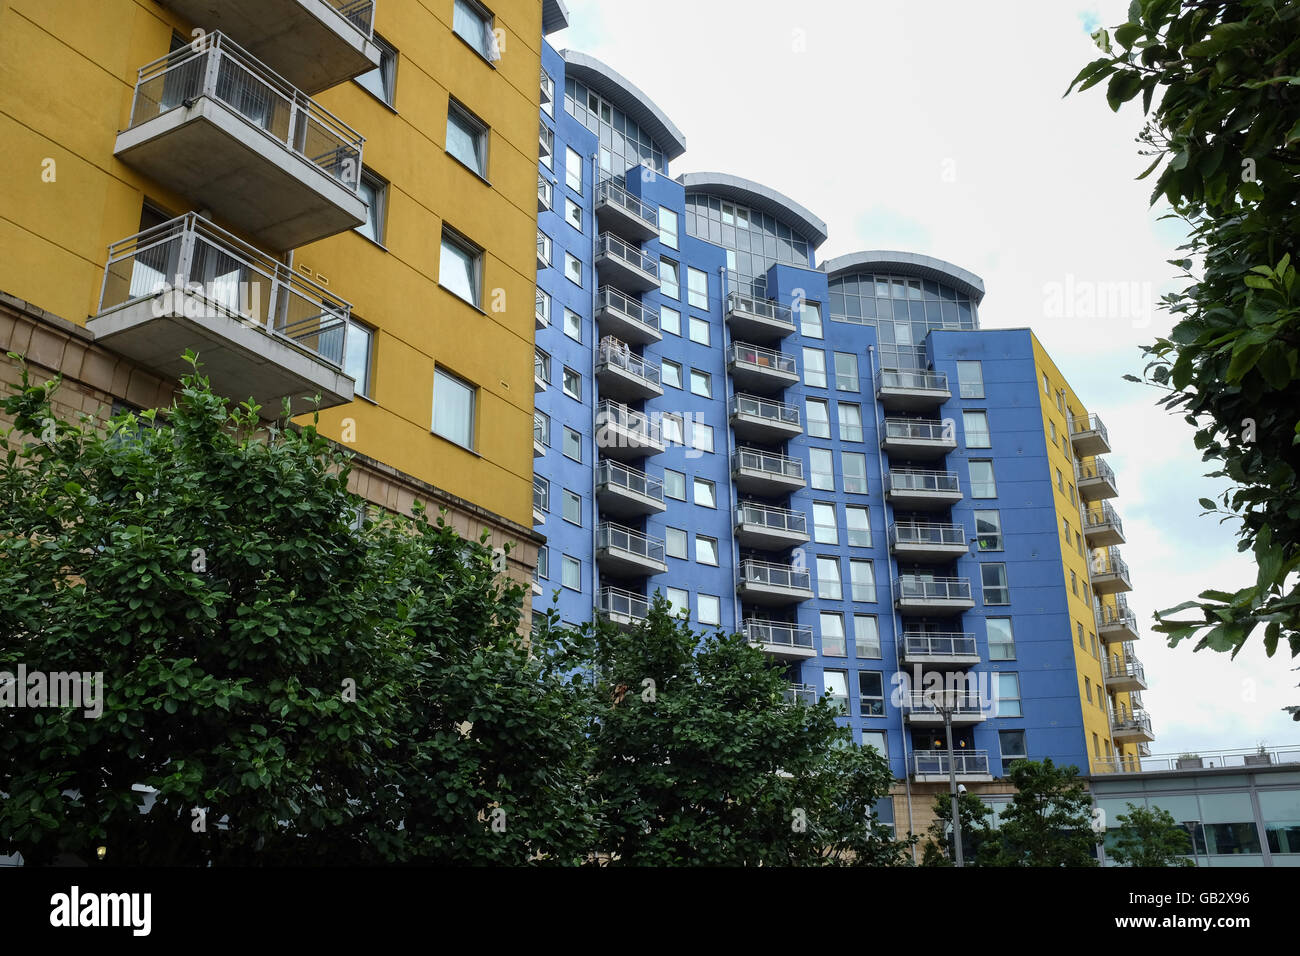 Crown Heights accommodation in Basingstoke, England. - Stock Image